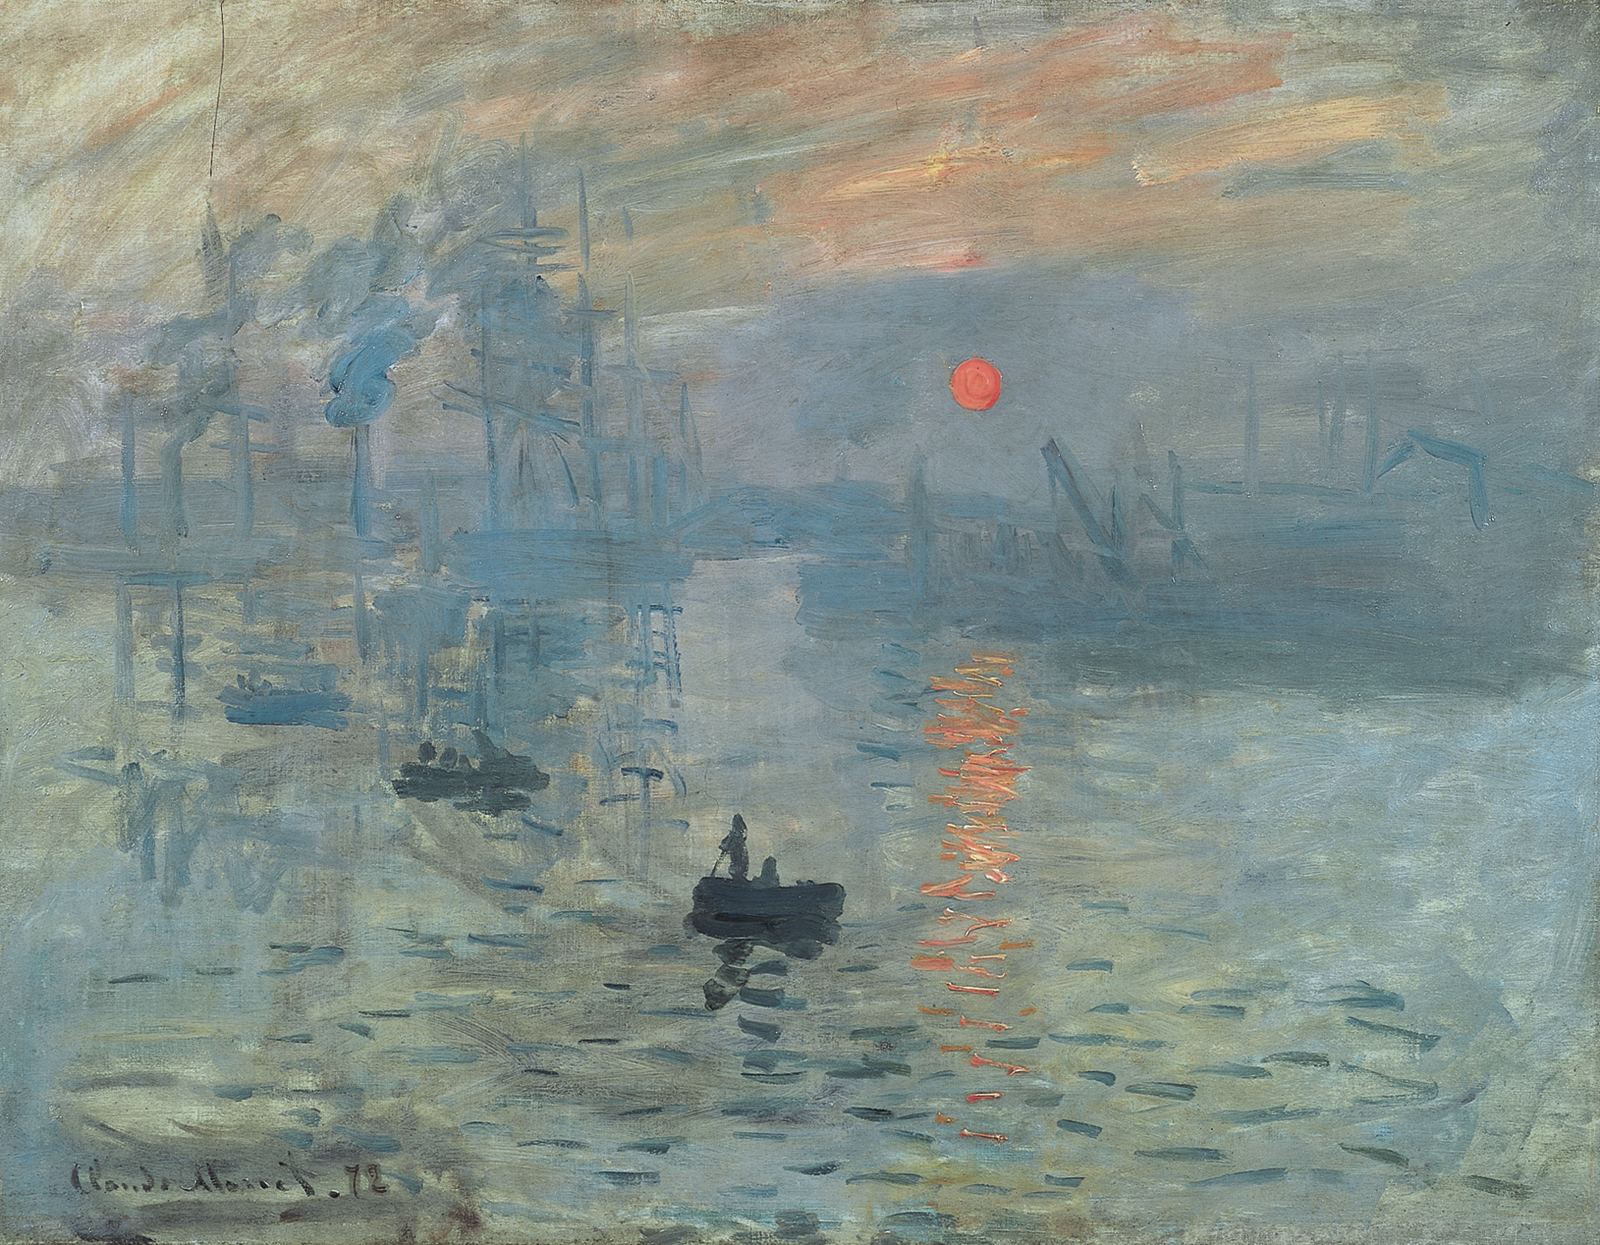 """Impression,"" Claude Monet,1872, Oil on canvas, shows a sunset/ sunrise scene. Washed out features of industry chimmenies emitting smoke and sail boat contours or shadow like features and before them, but still as a shadow but back lift by the setting or rising sun, are three paddle boats, seemingly paddling to shore or towards the viewer."